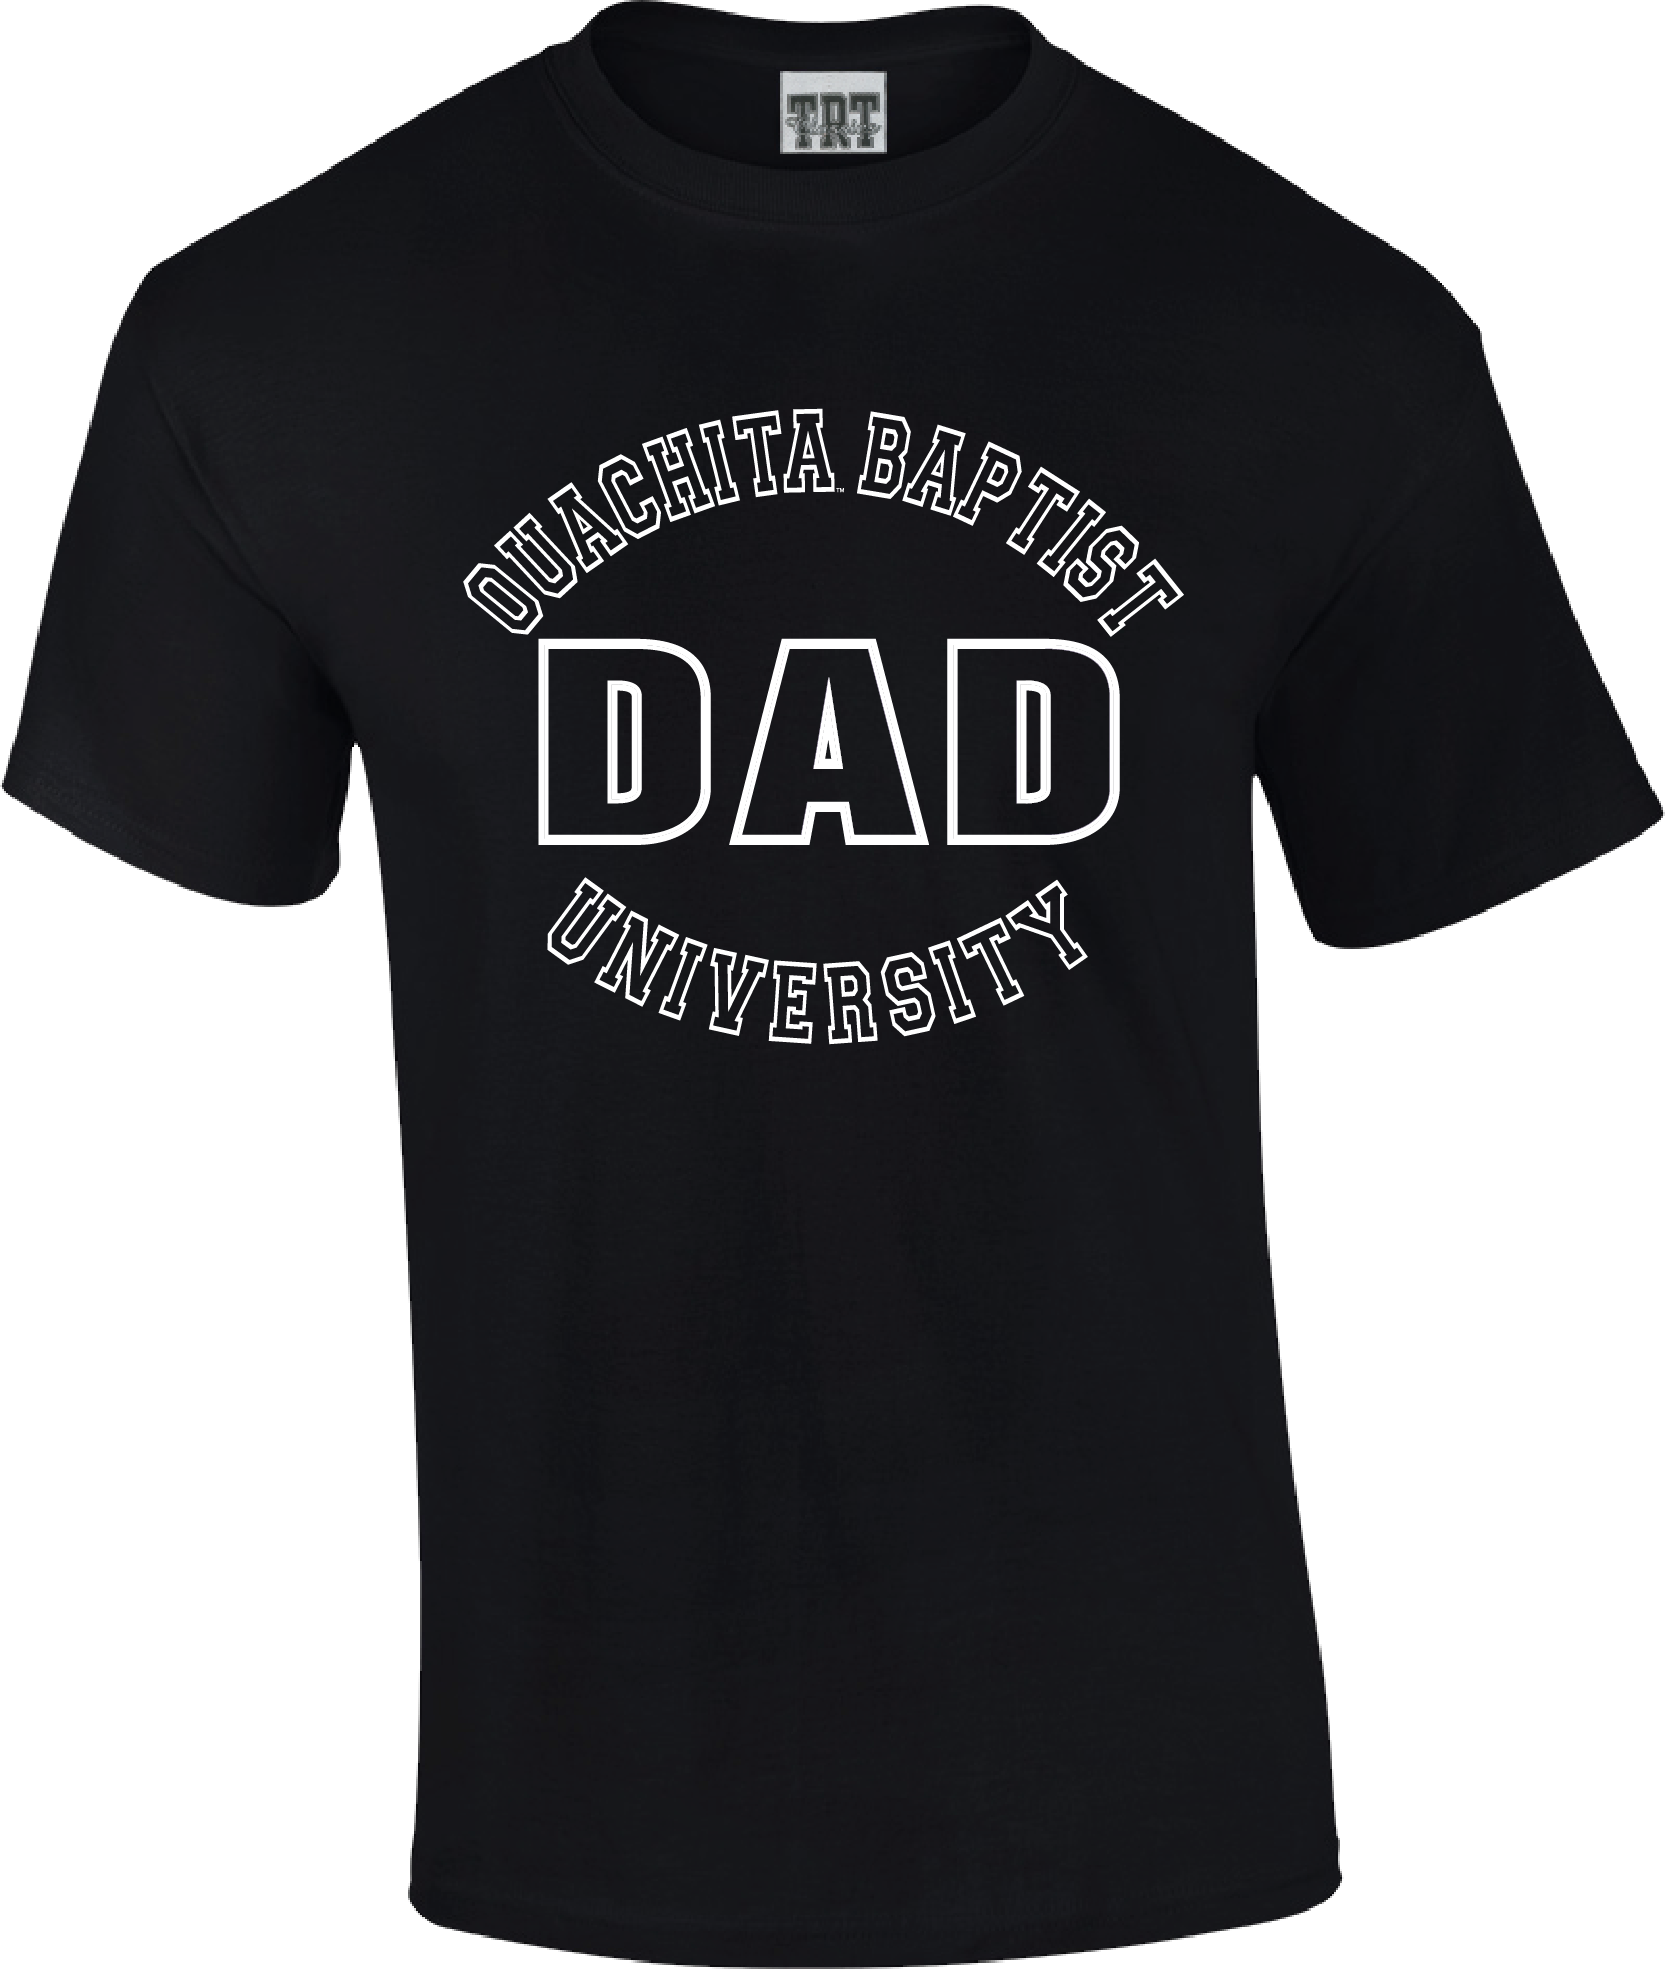 OUACHITA BAPTIST UNIVERSITY DAD SS TEE